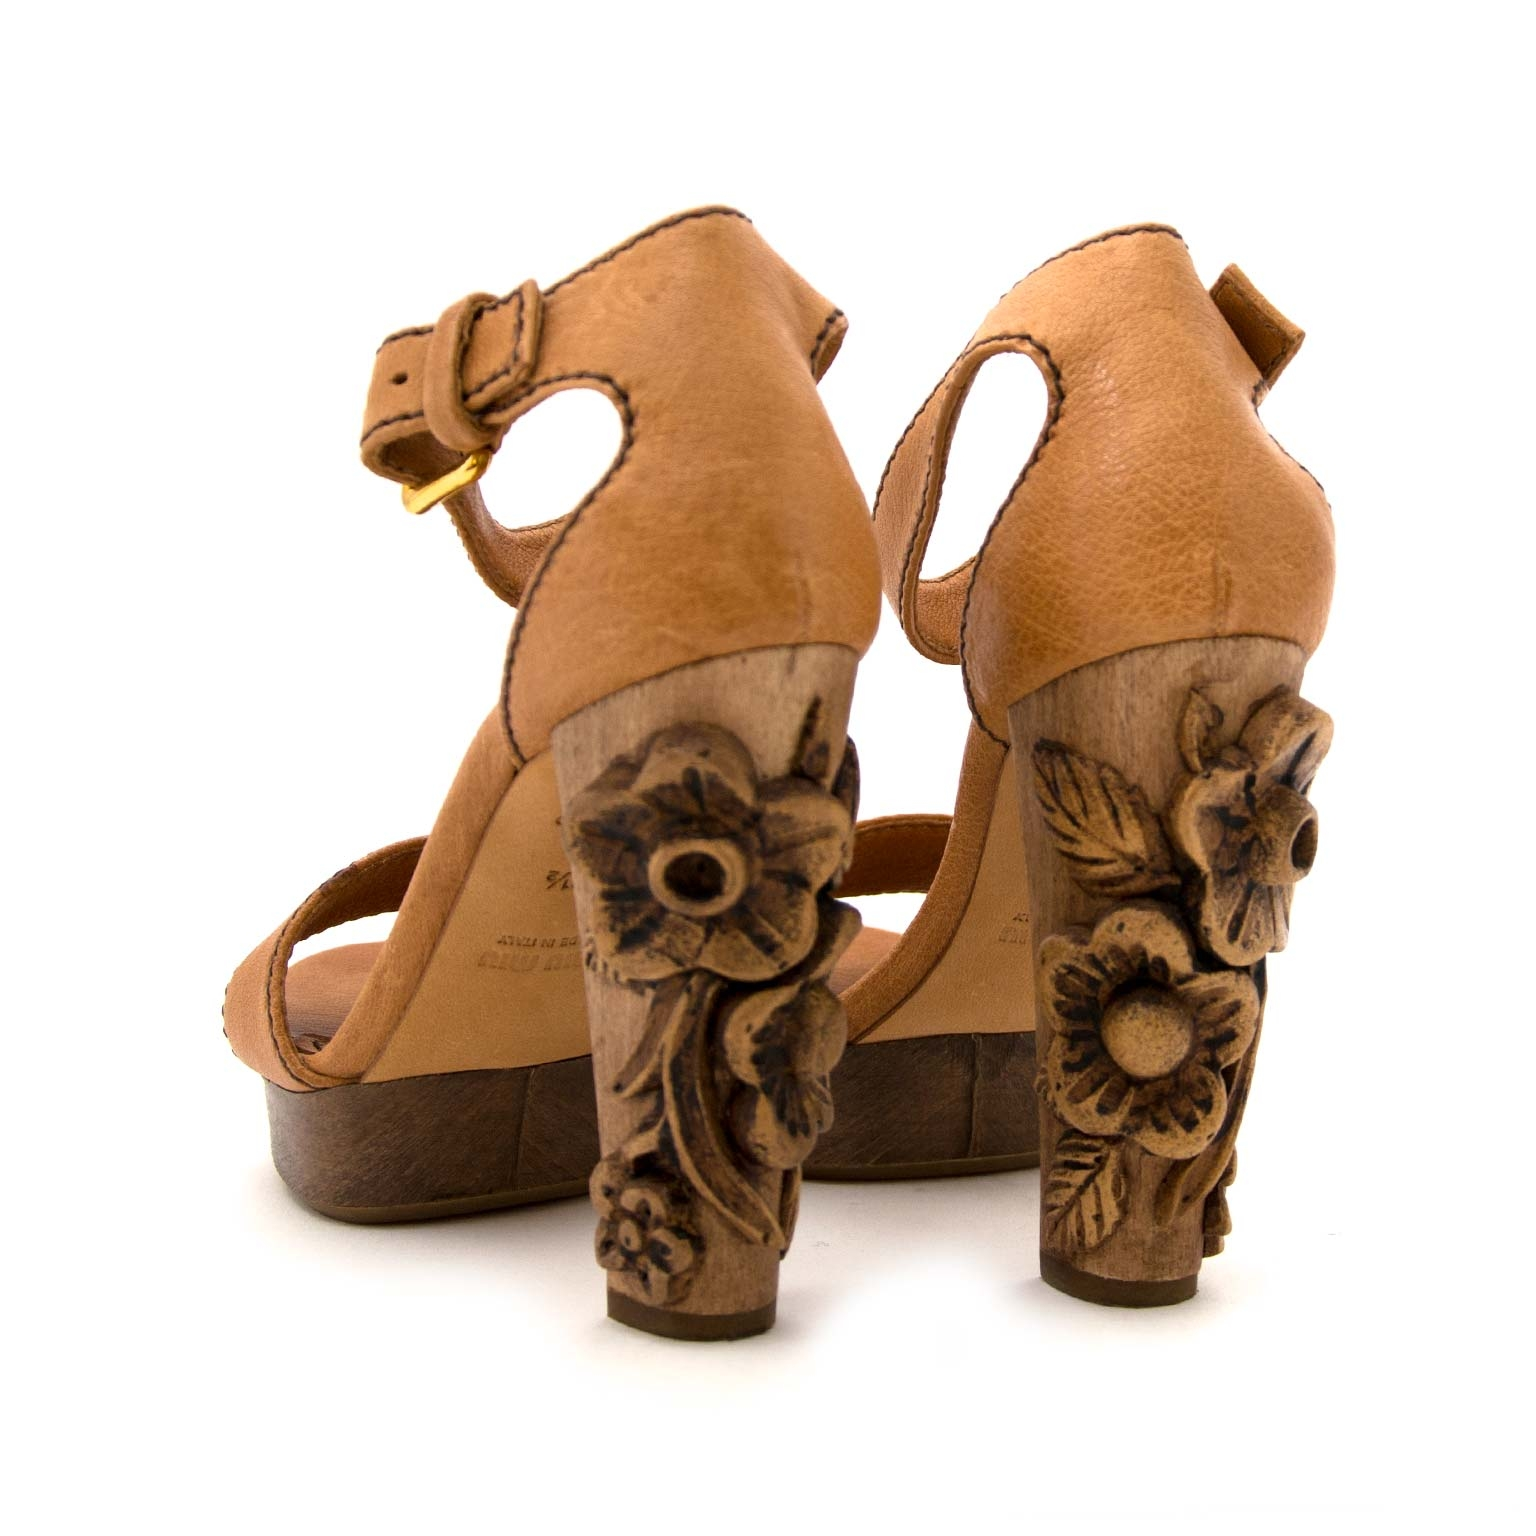 buy Miu MIu Wooden Floral Platform Heels - Size 36,5 and pay save online at labellov